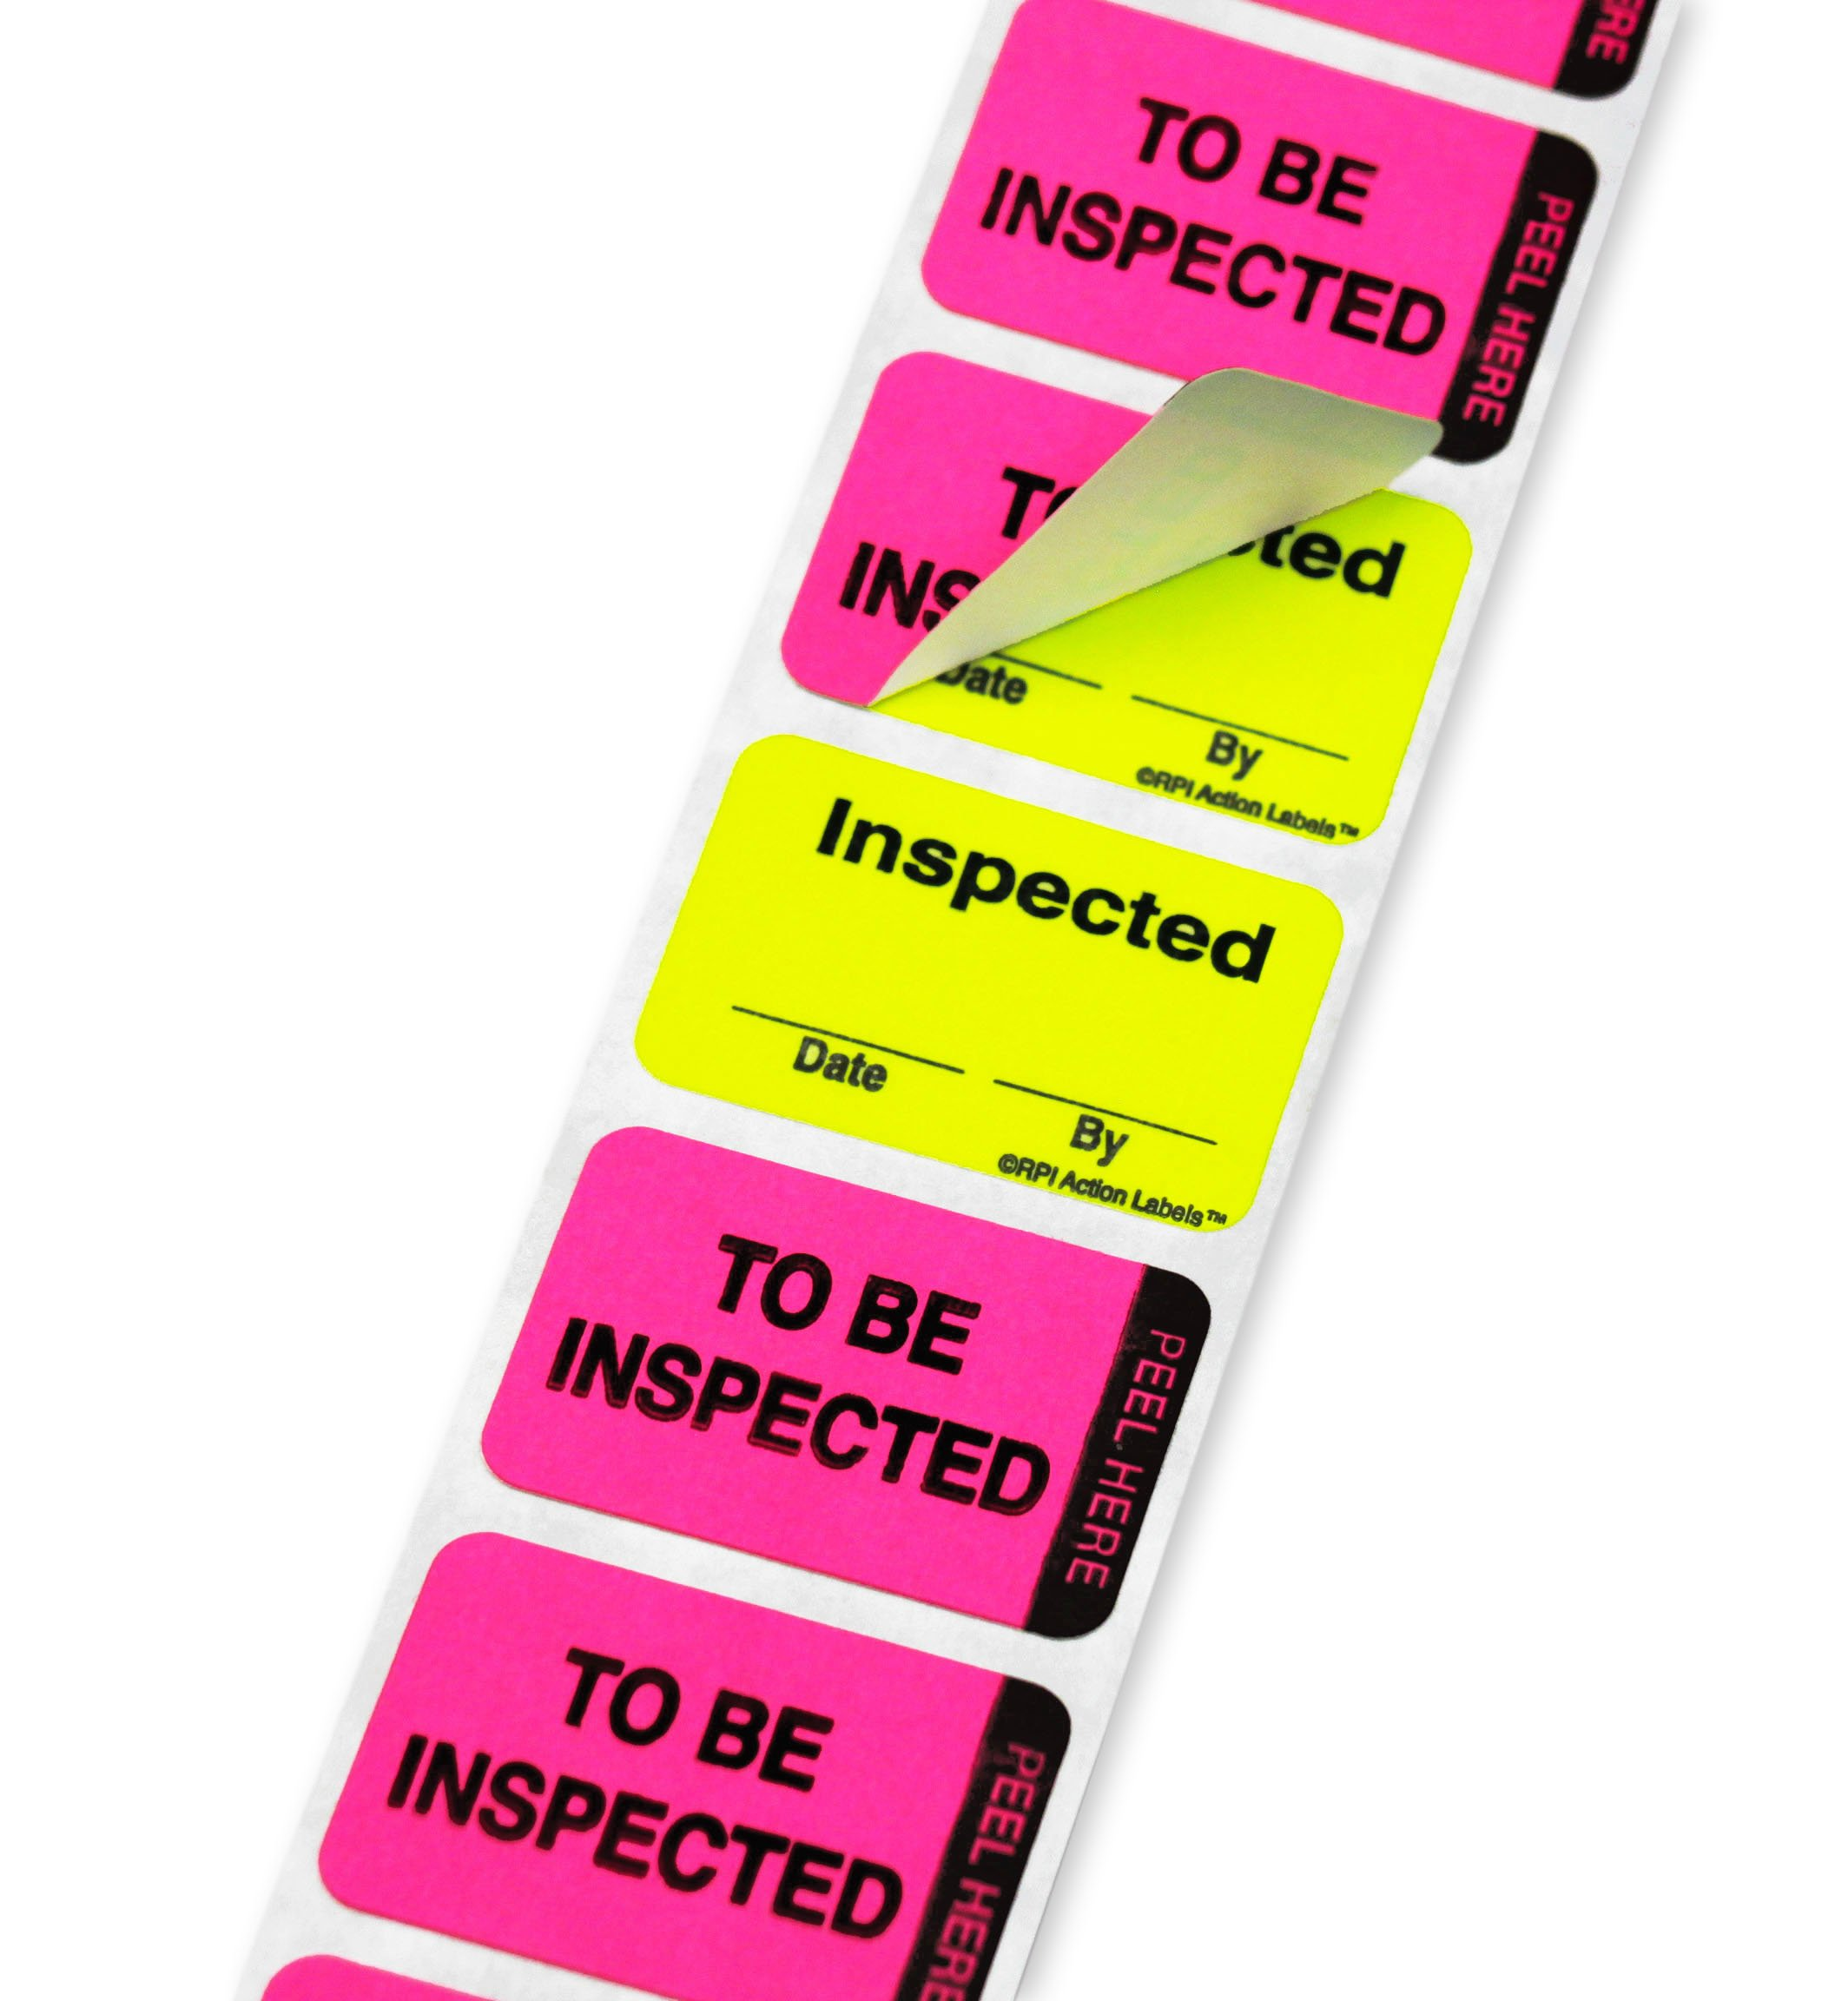 ChromaLabel 1 x 1-1/2 inch Fluorescent Pink/Yellow Double Layer QC Label | 'To Be Inspected/Inspected' Imprint | 250/Dispenser Box